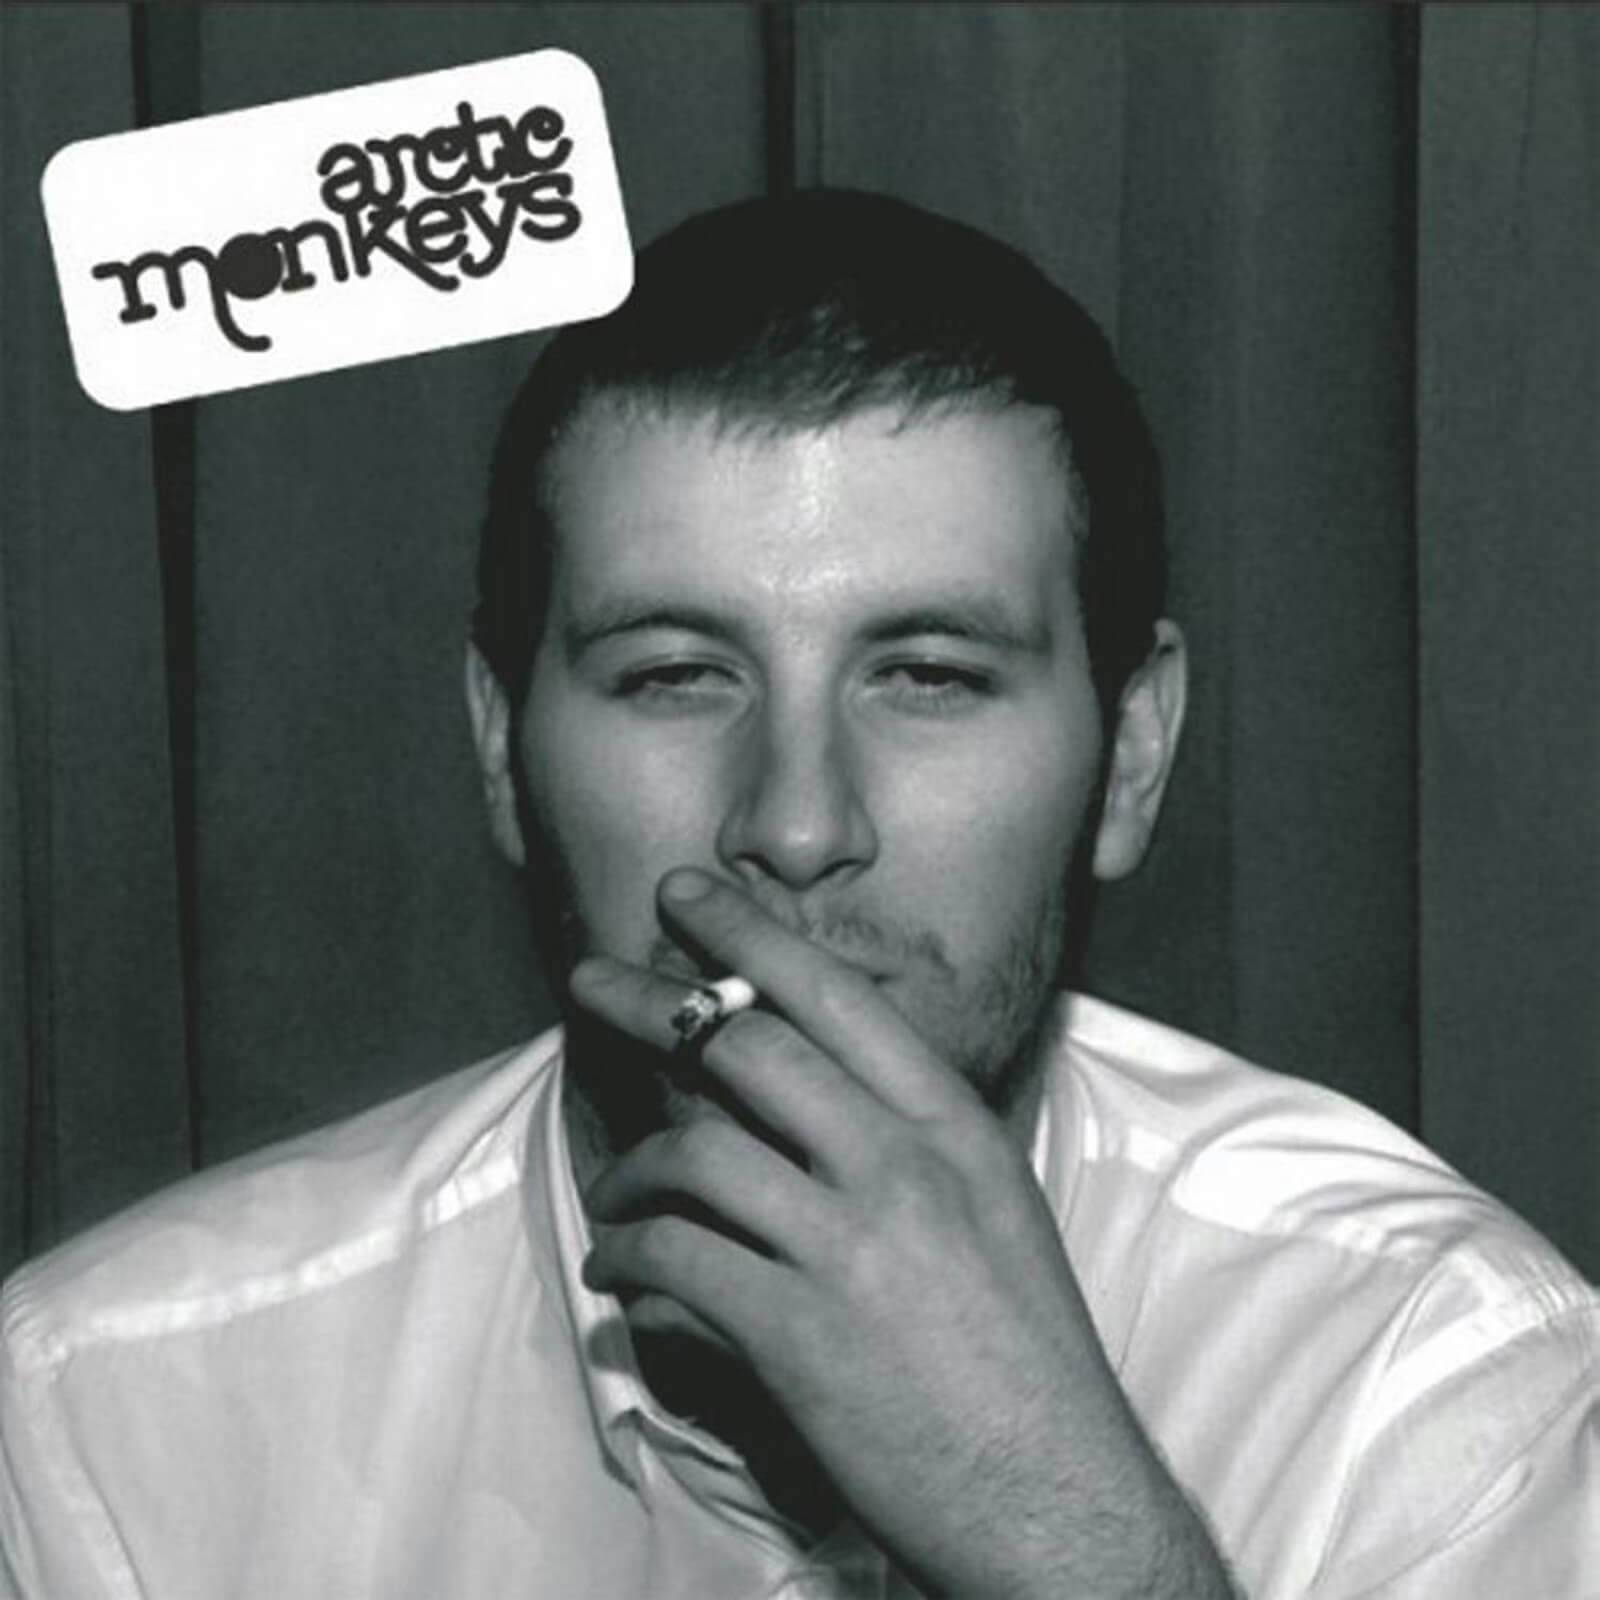 DOMINO RECORDING CO LTD Arctic Monkeys - Whatever People Say I Am, That's What I'm Not - LP